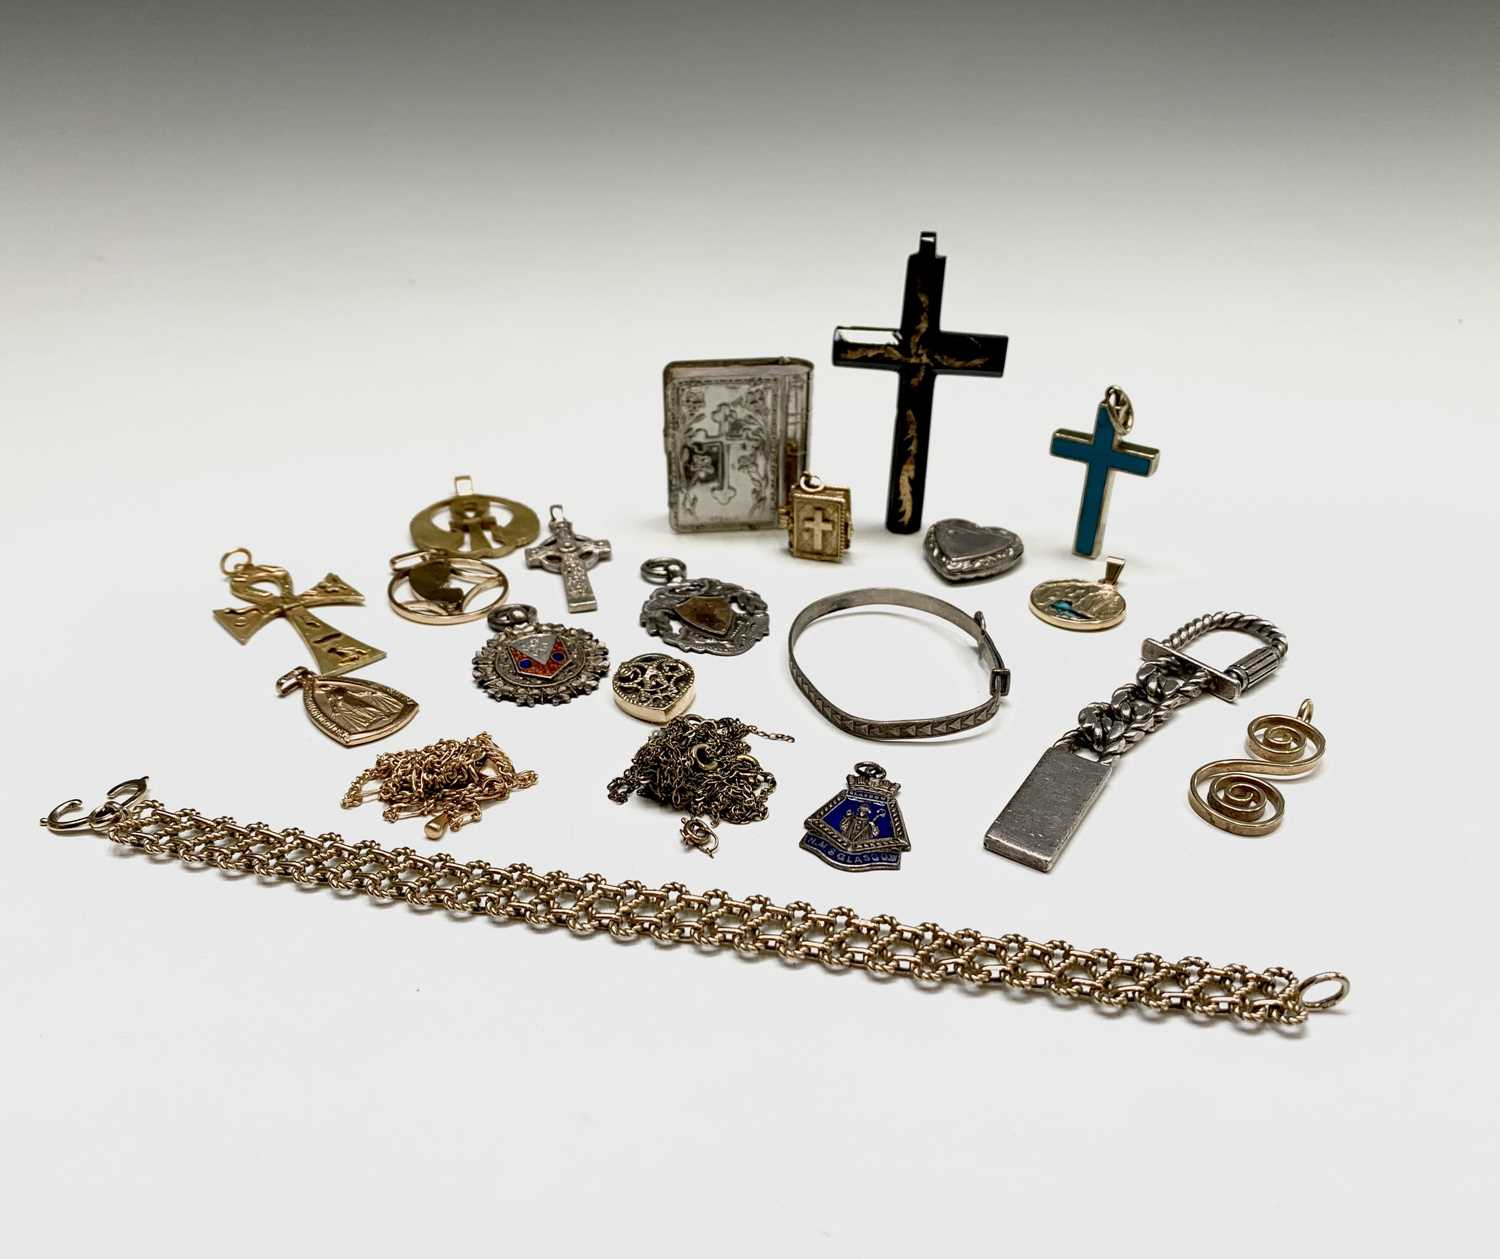 Lot 260 - Silver and other jewellery